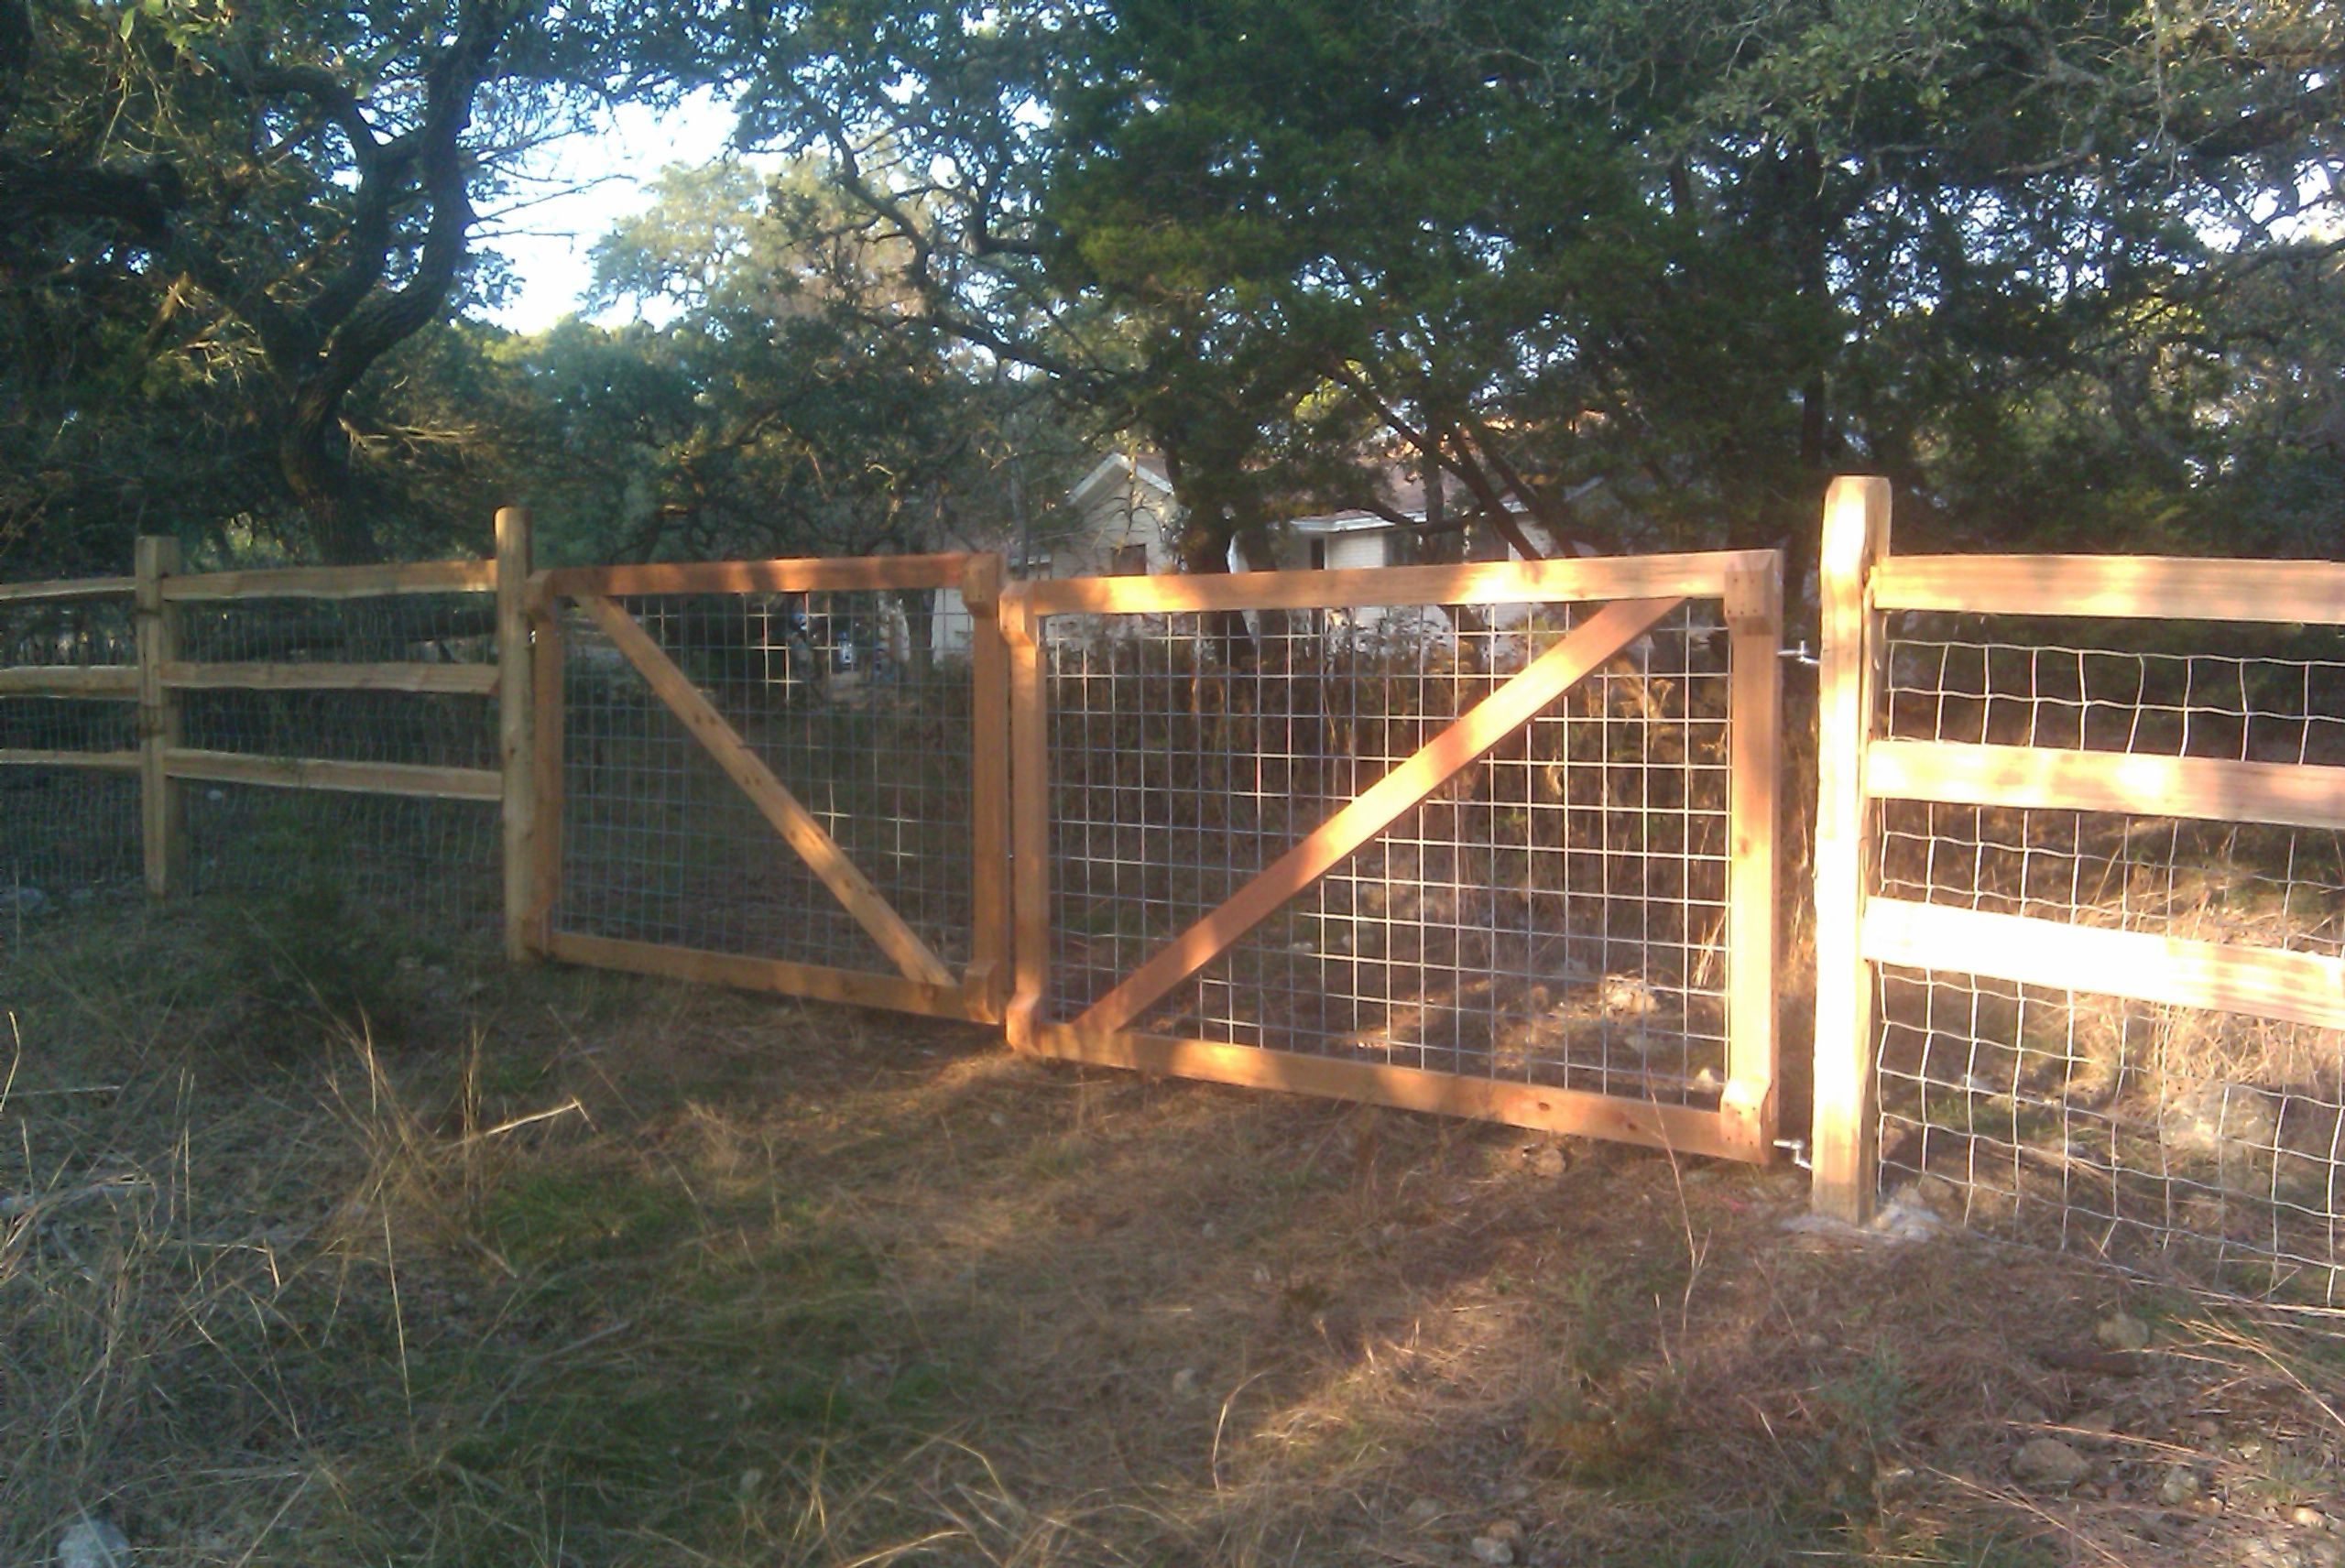 farm fence gate. Find This Pin And More On Farm Ideas. Want Gate Fence